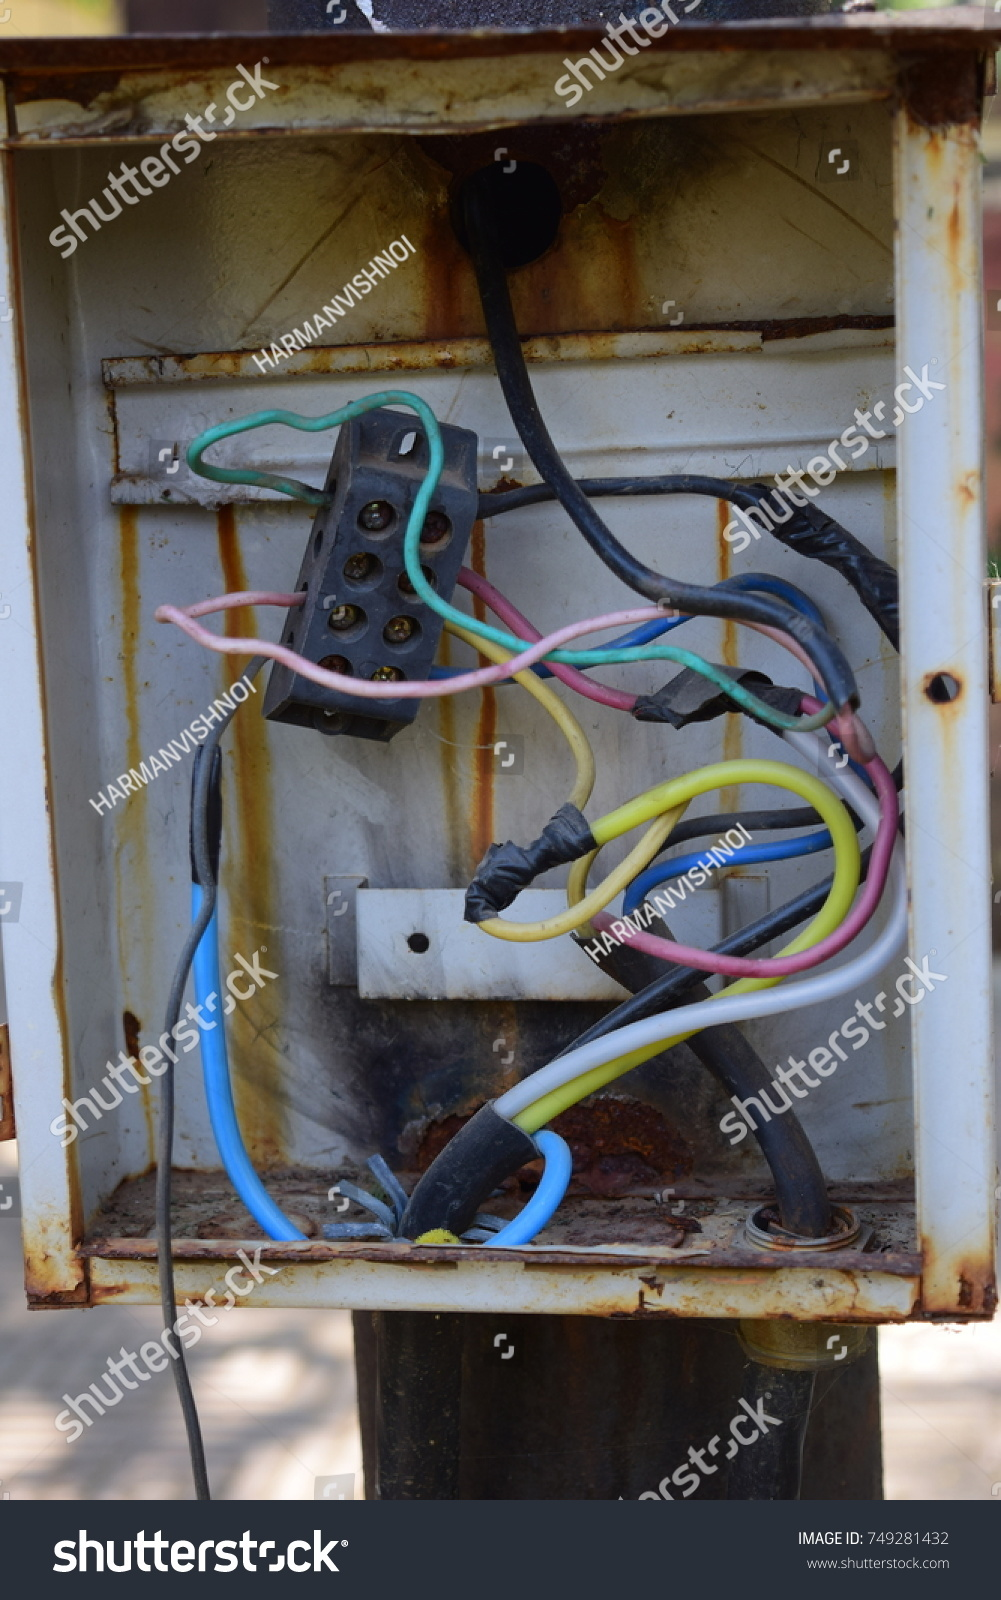 hight resolution of a broken electrical junction panel box